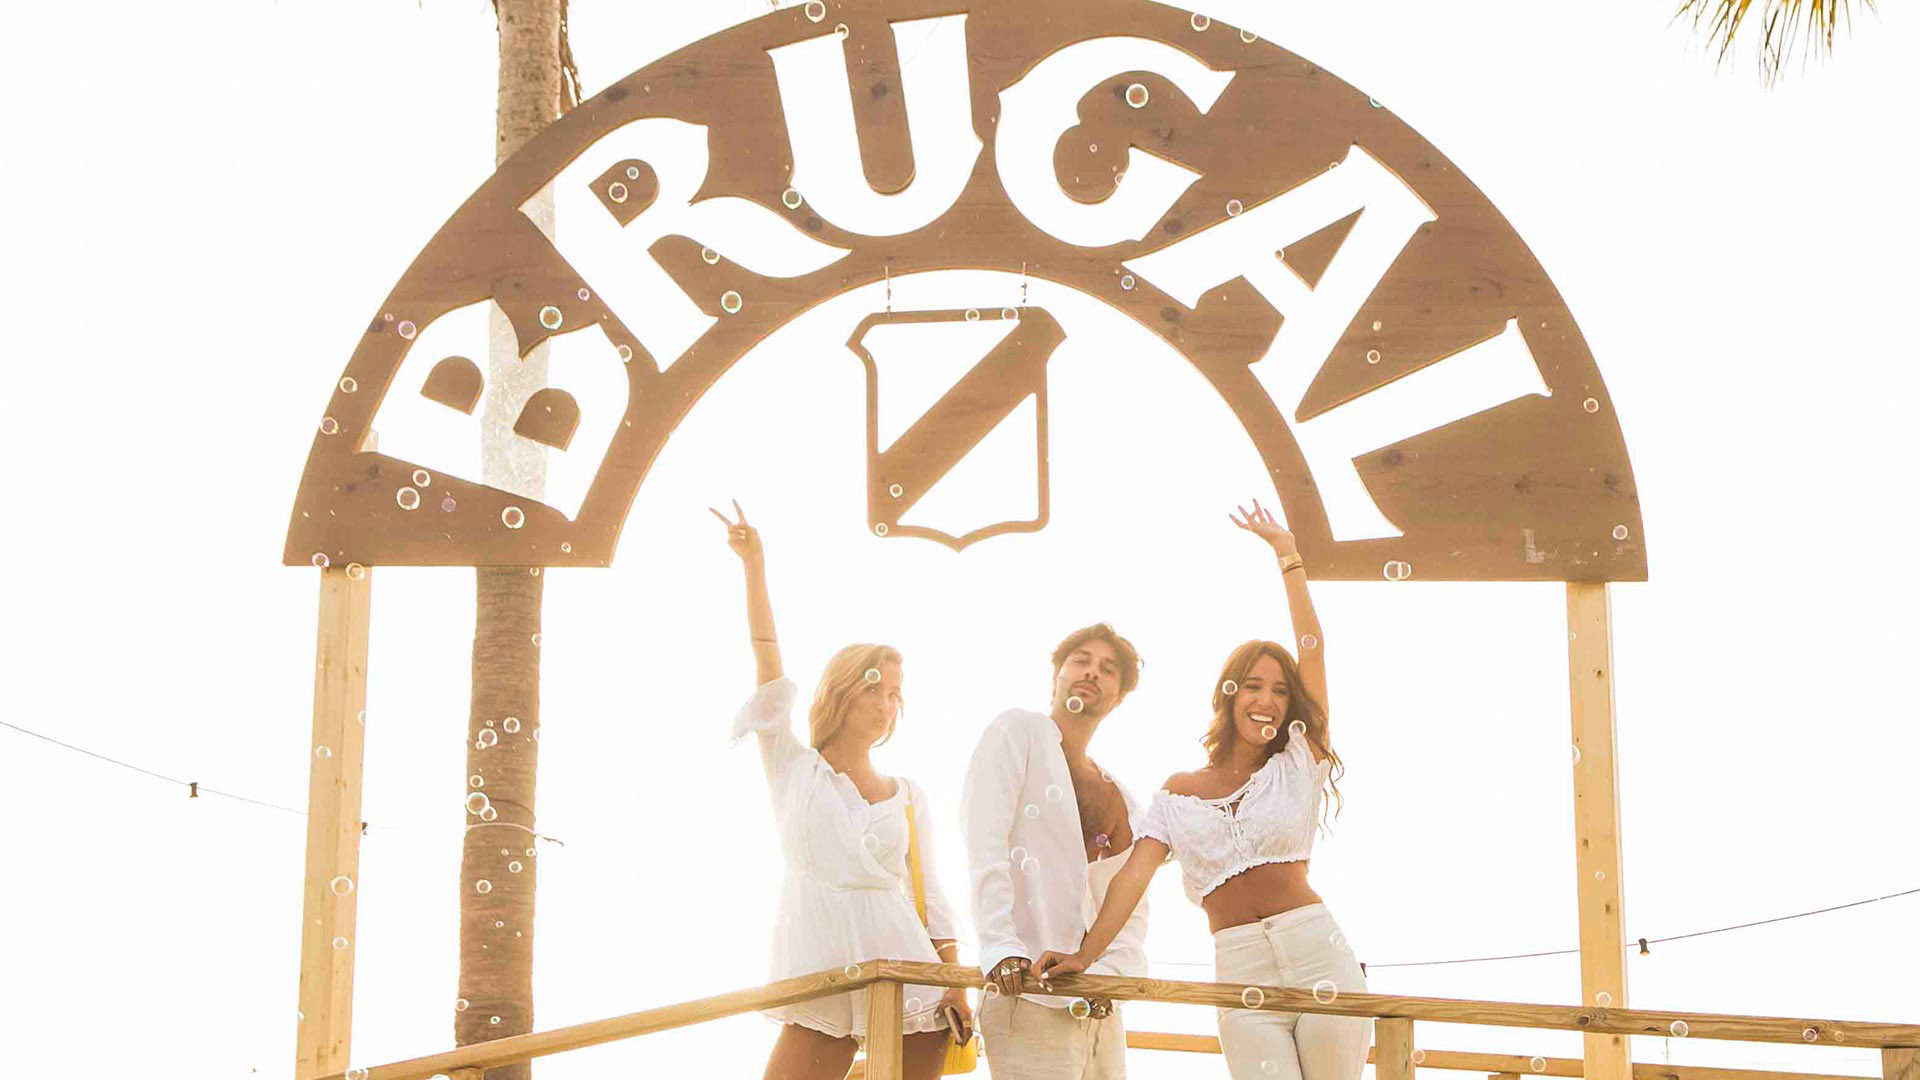 Ocean tarifa by brugal event. experiential hotel design and assembly